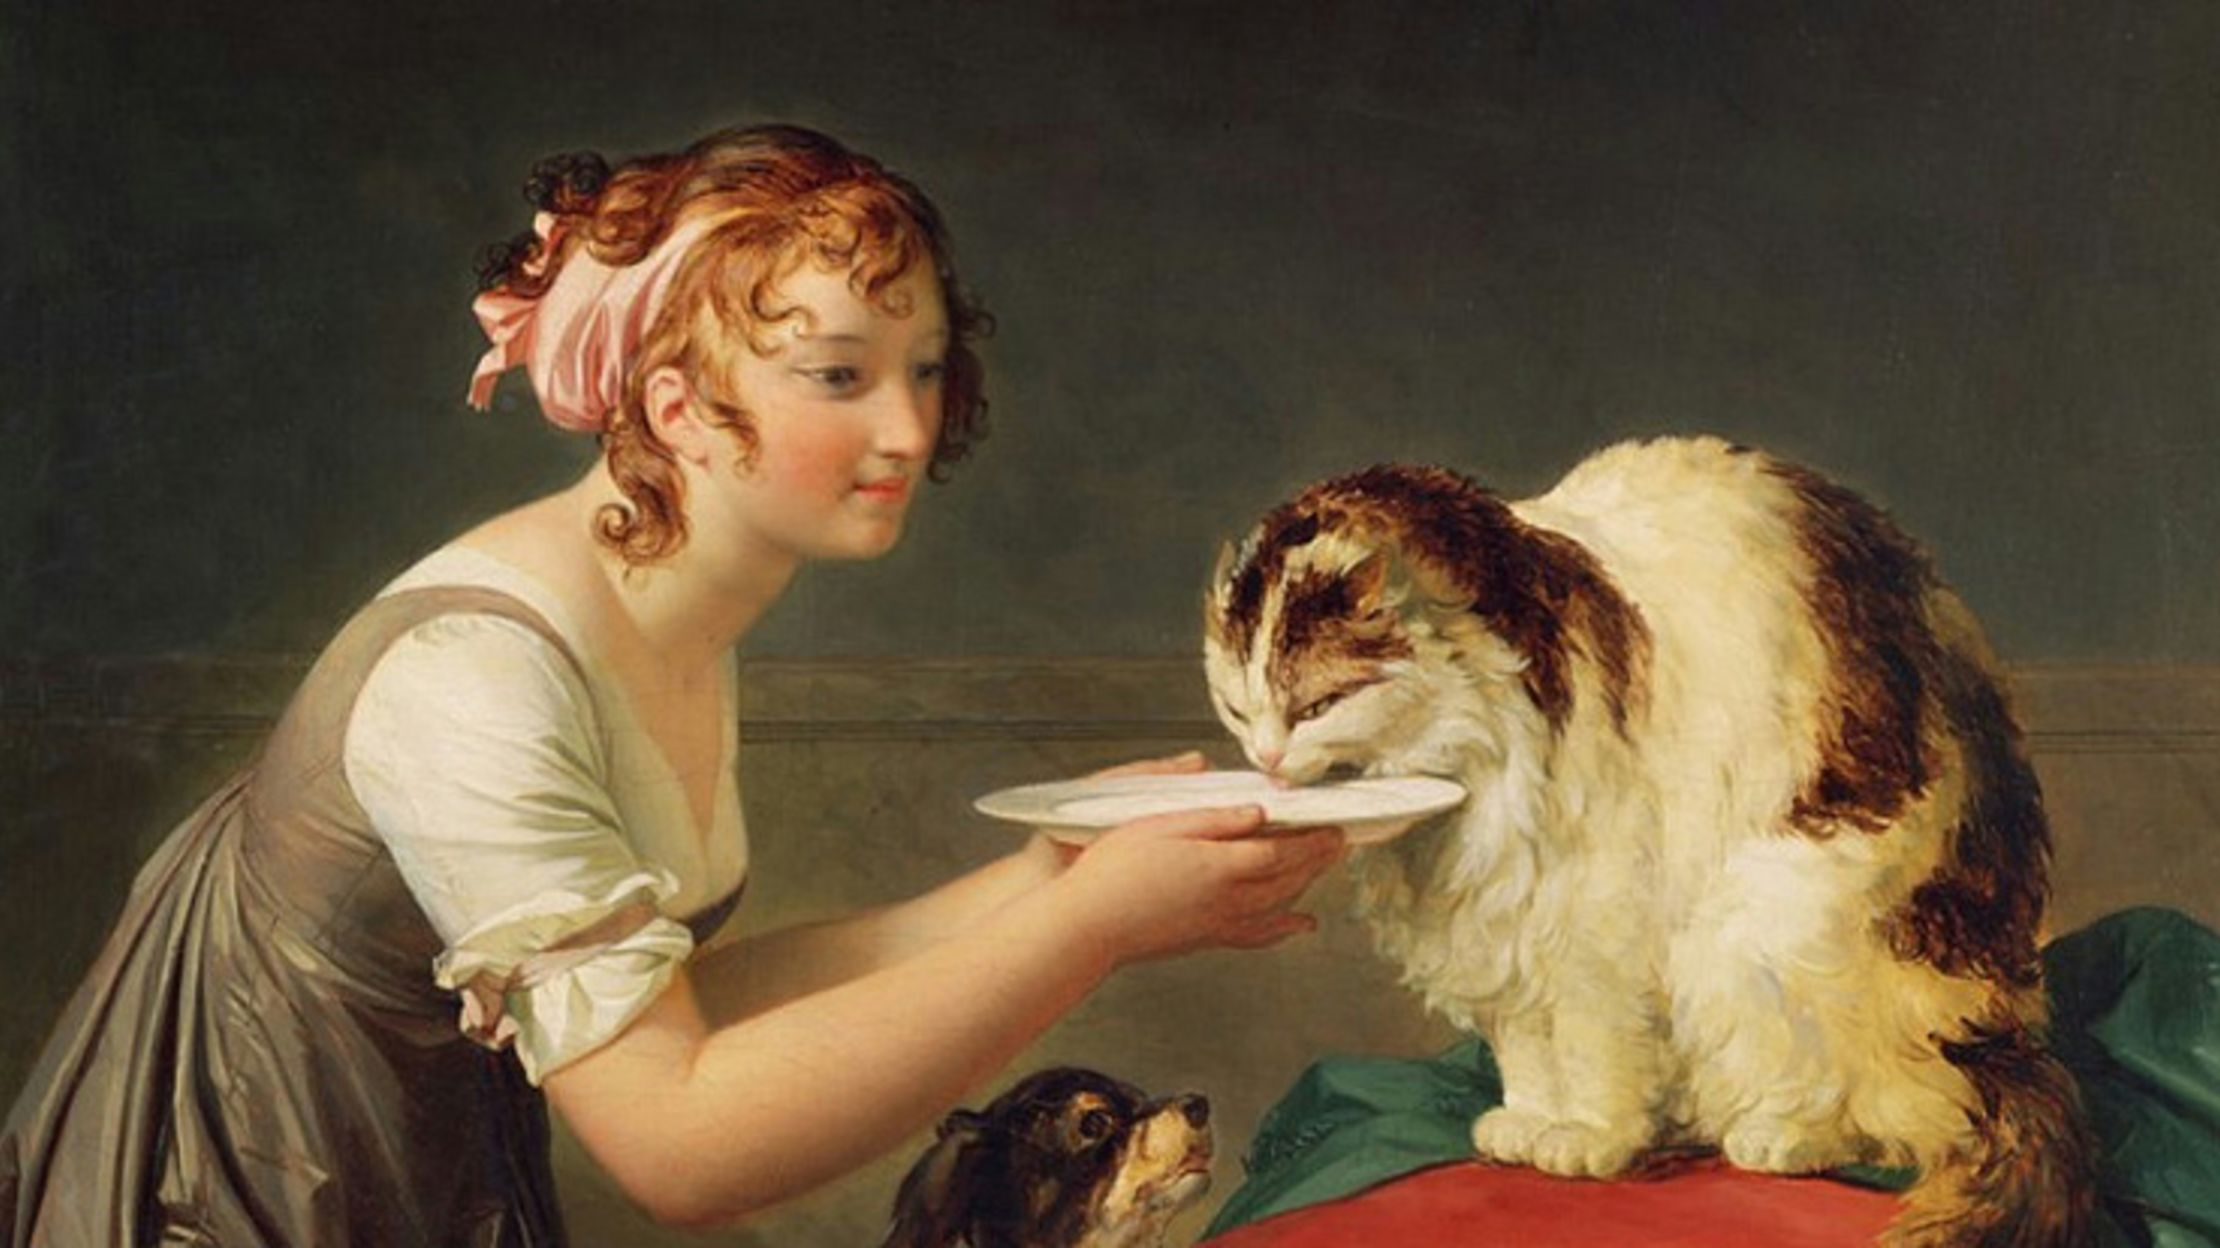 14 Legends About Cats From Around the World | Mental Floss